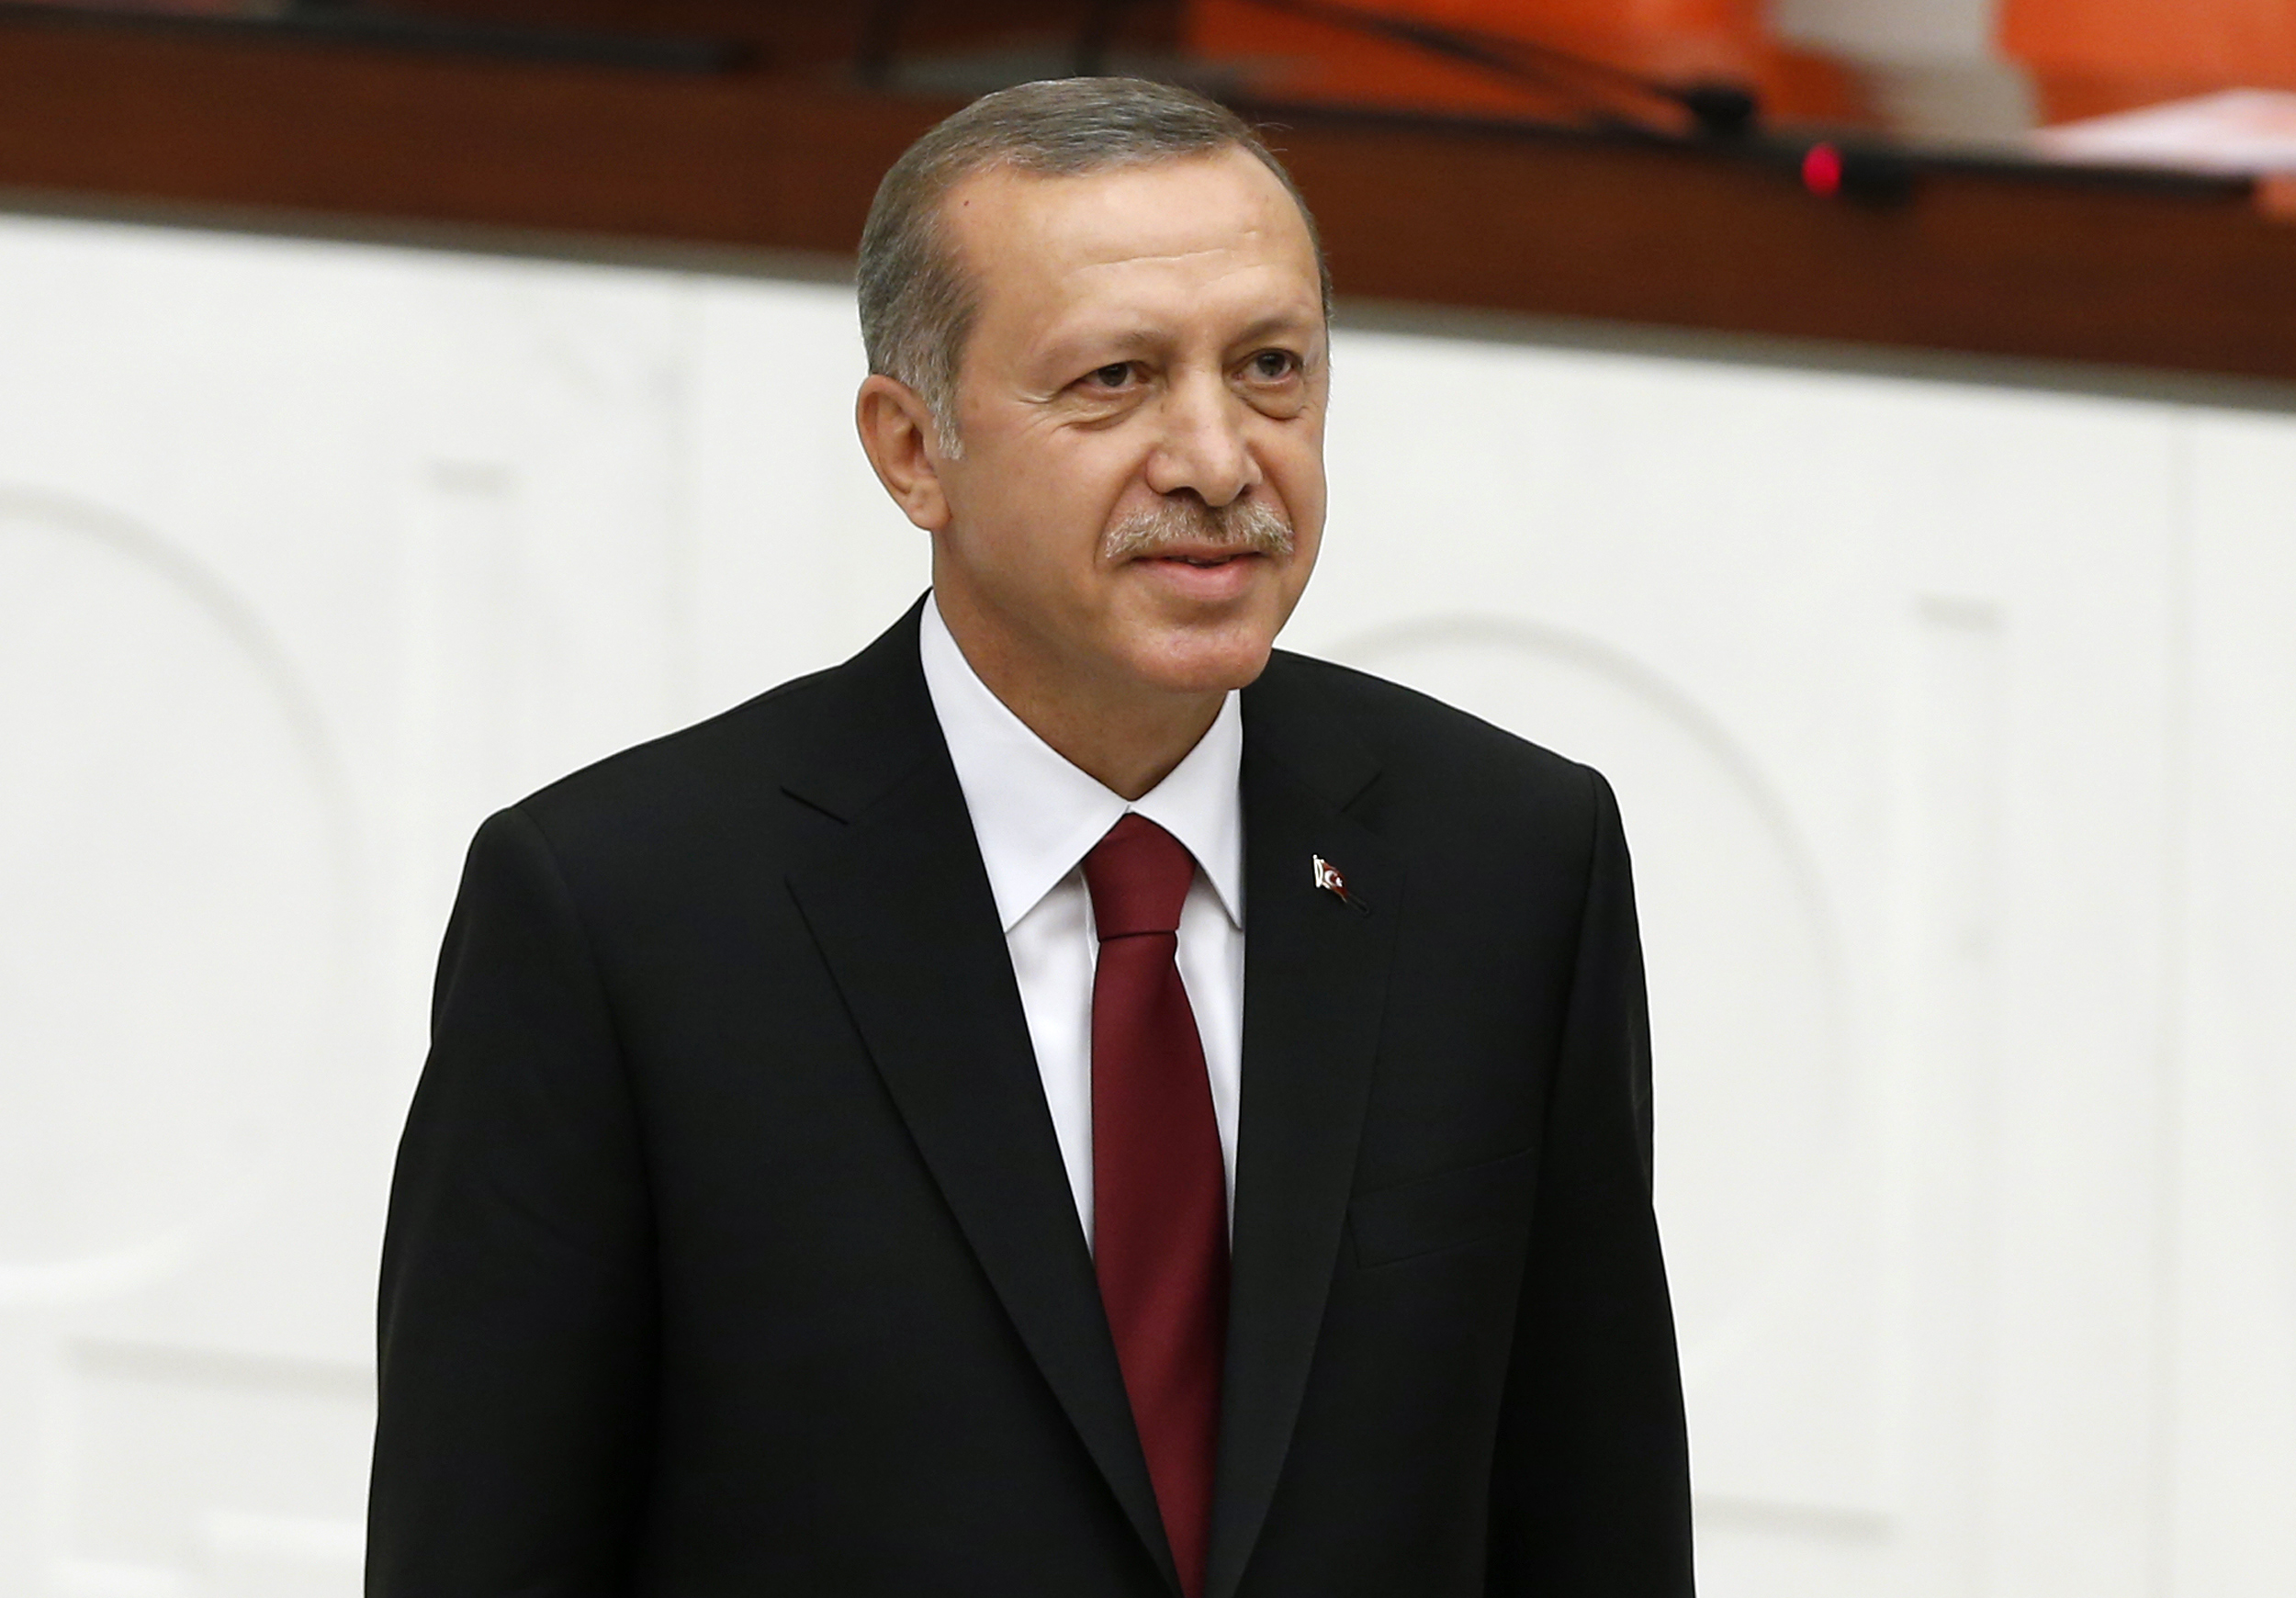 Turkey's new President Recep Tayyip Erdogan attends a swearing-in ceremony at the parliament in Ankara on Aug. 28, 2014.